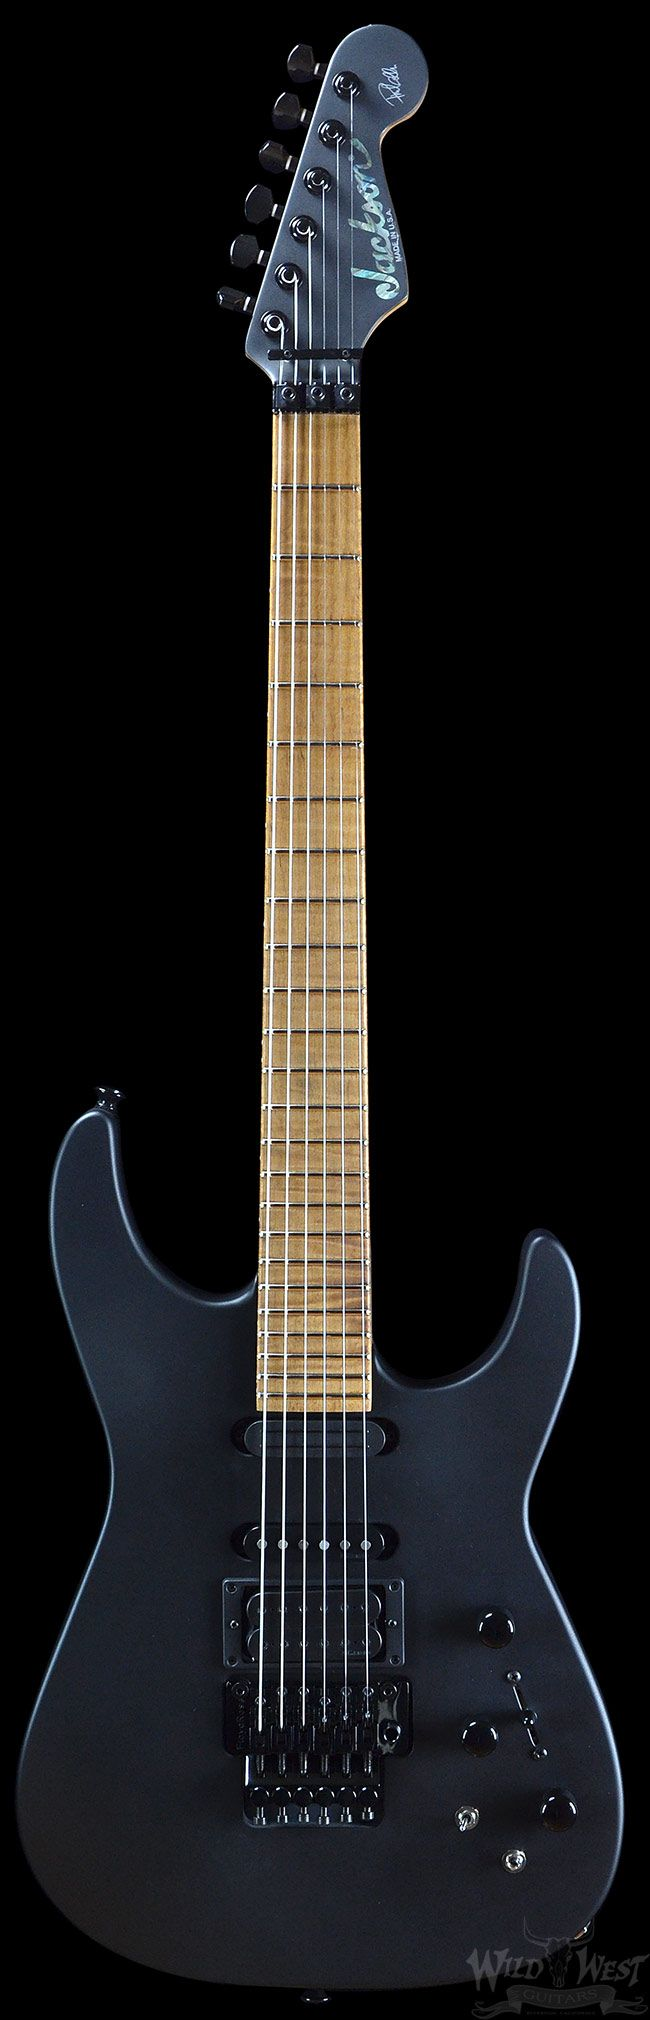 Jackson Custom Shop Limited Edition Phil Collen Flat Black PC-1 | Electric Guitars | Wild West Guitars